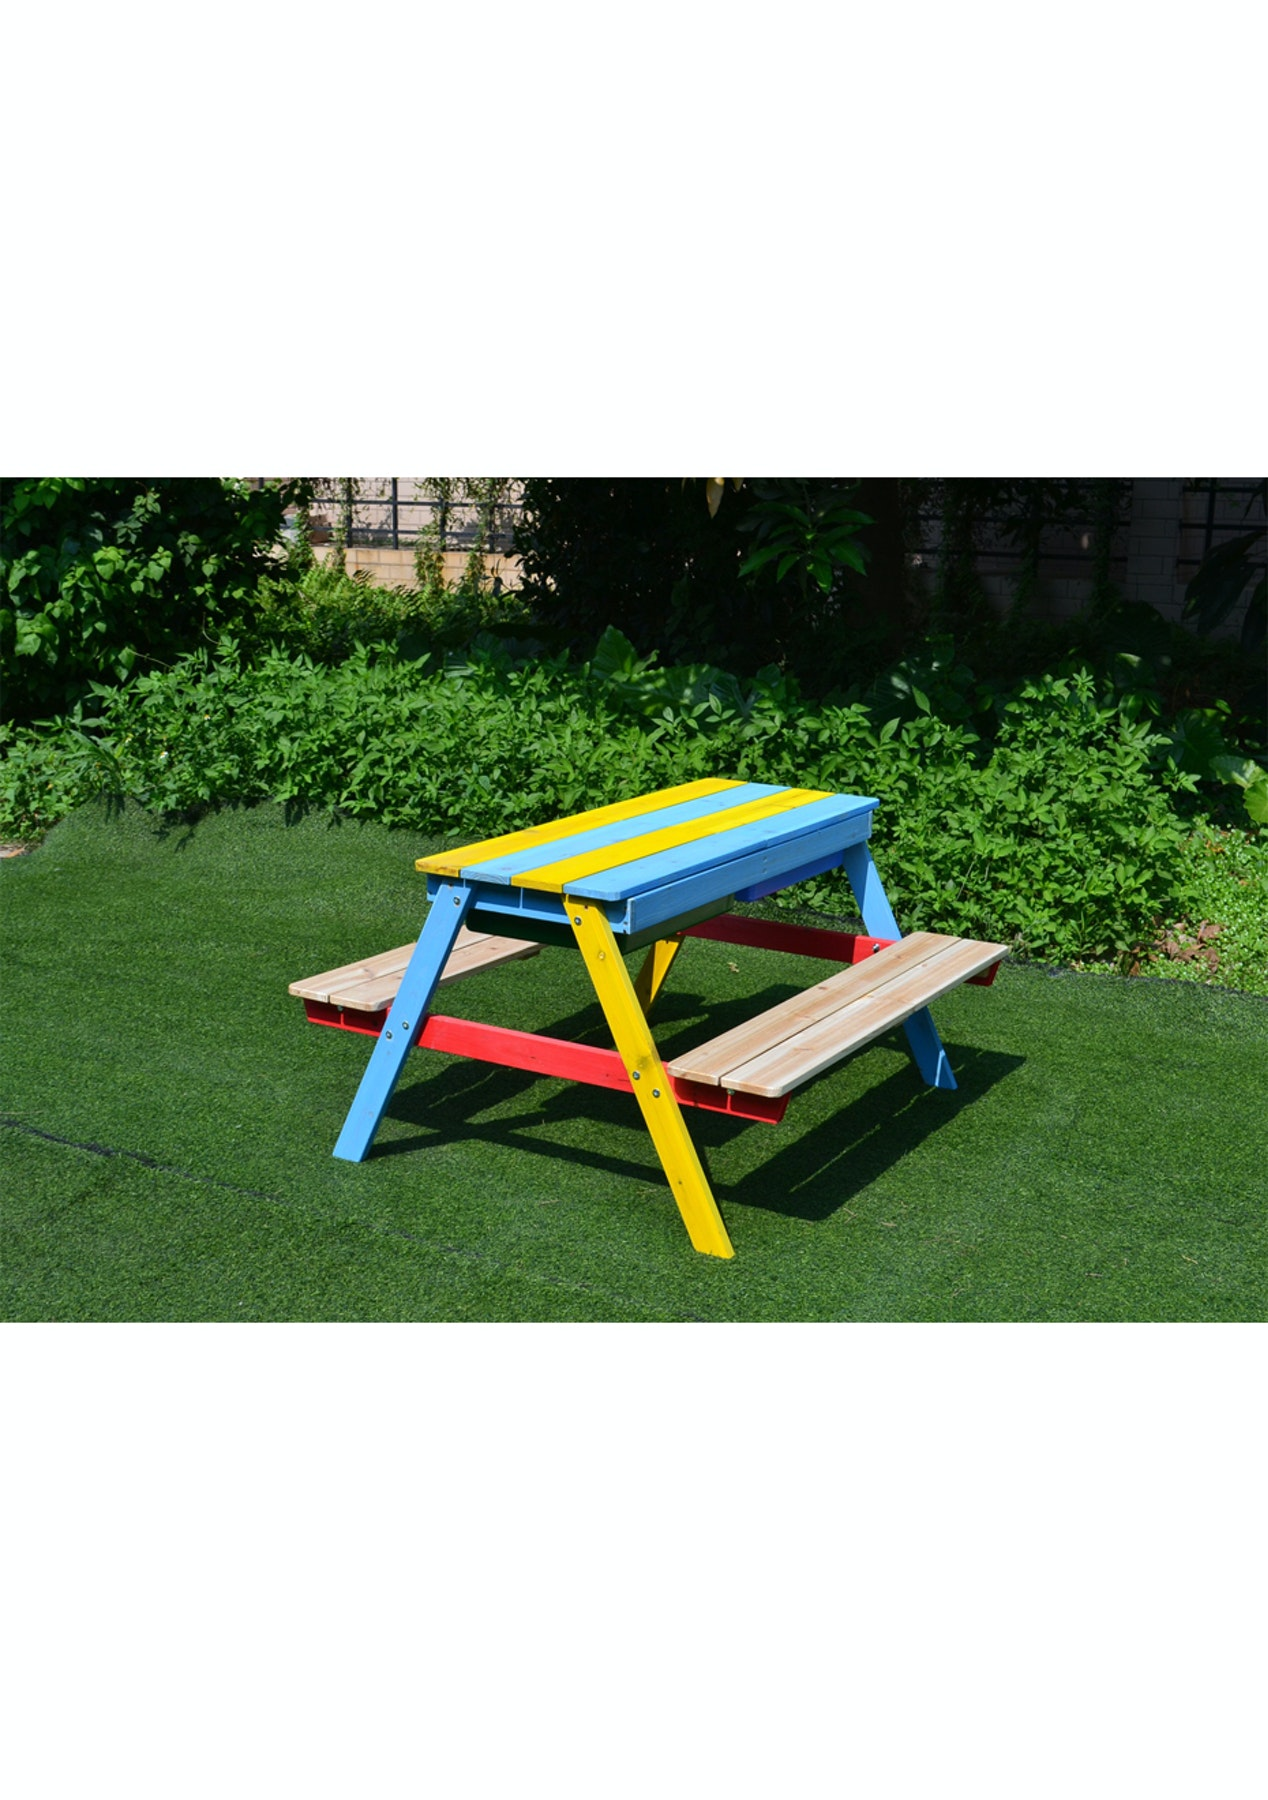 Astonishing Childrens Wooden Sandpit Bench With Basin Pabps2019 Chair Design Images Pabps2019Com